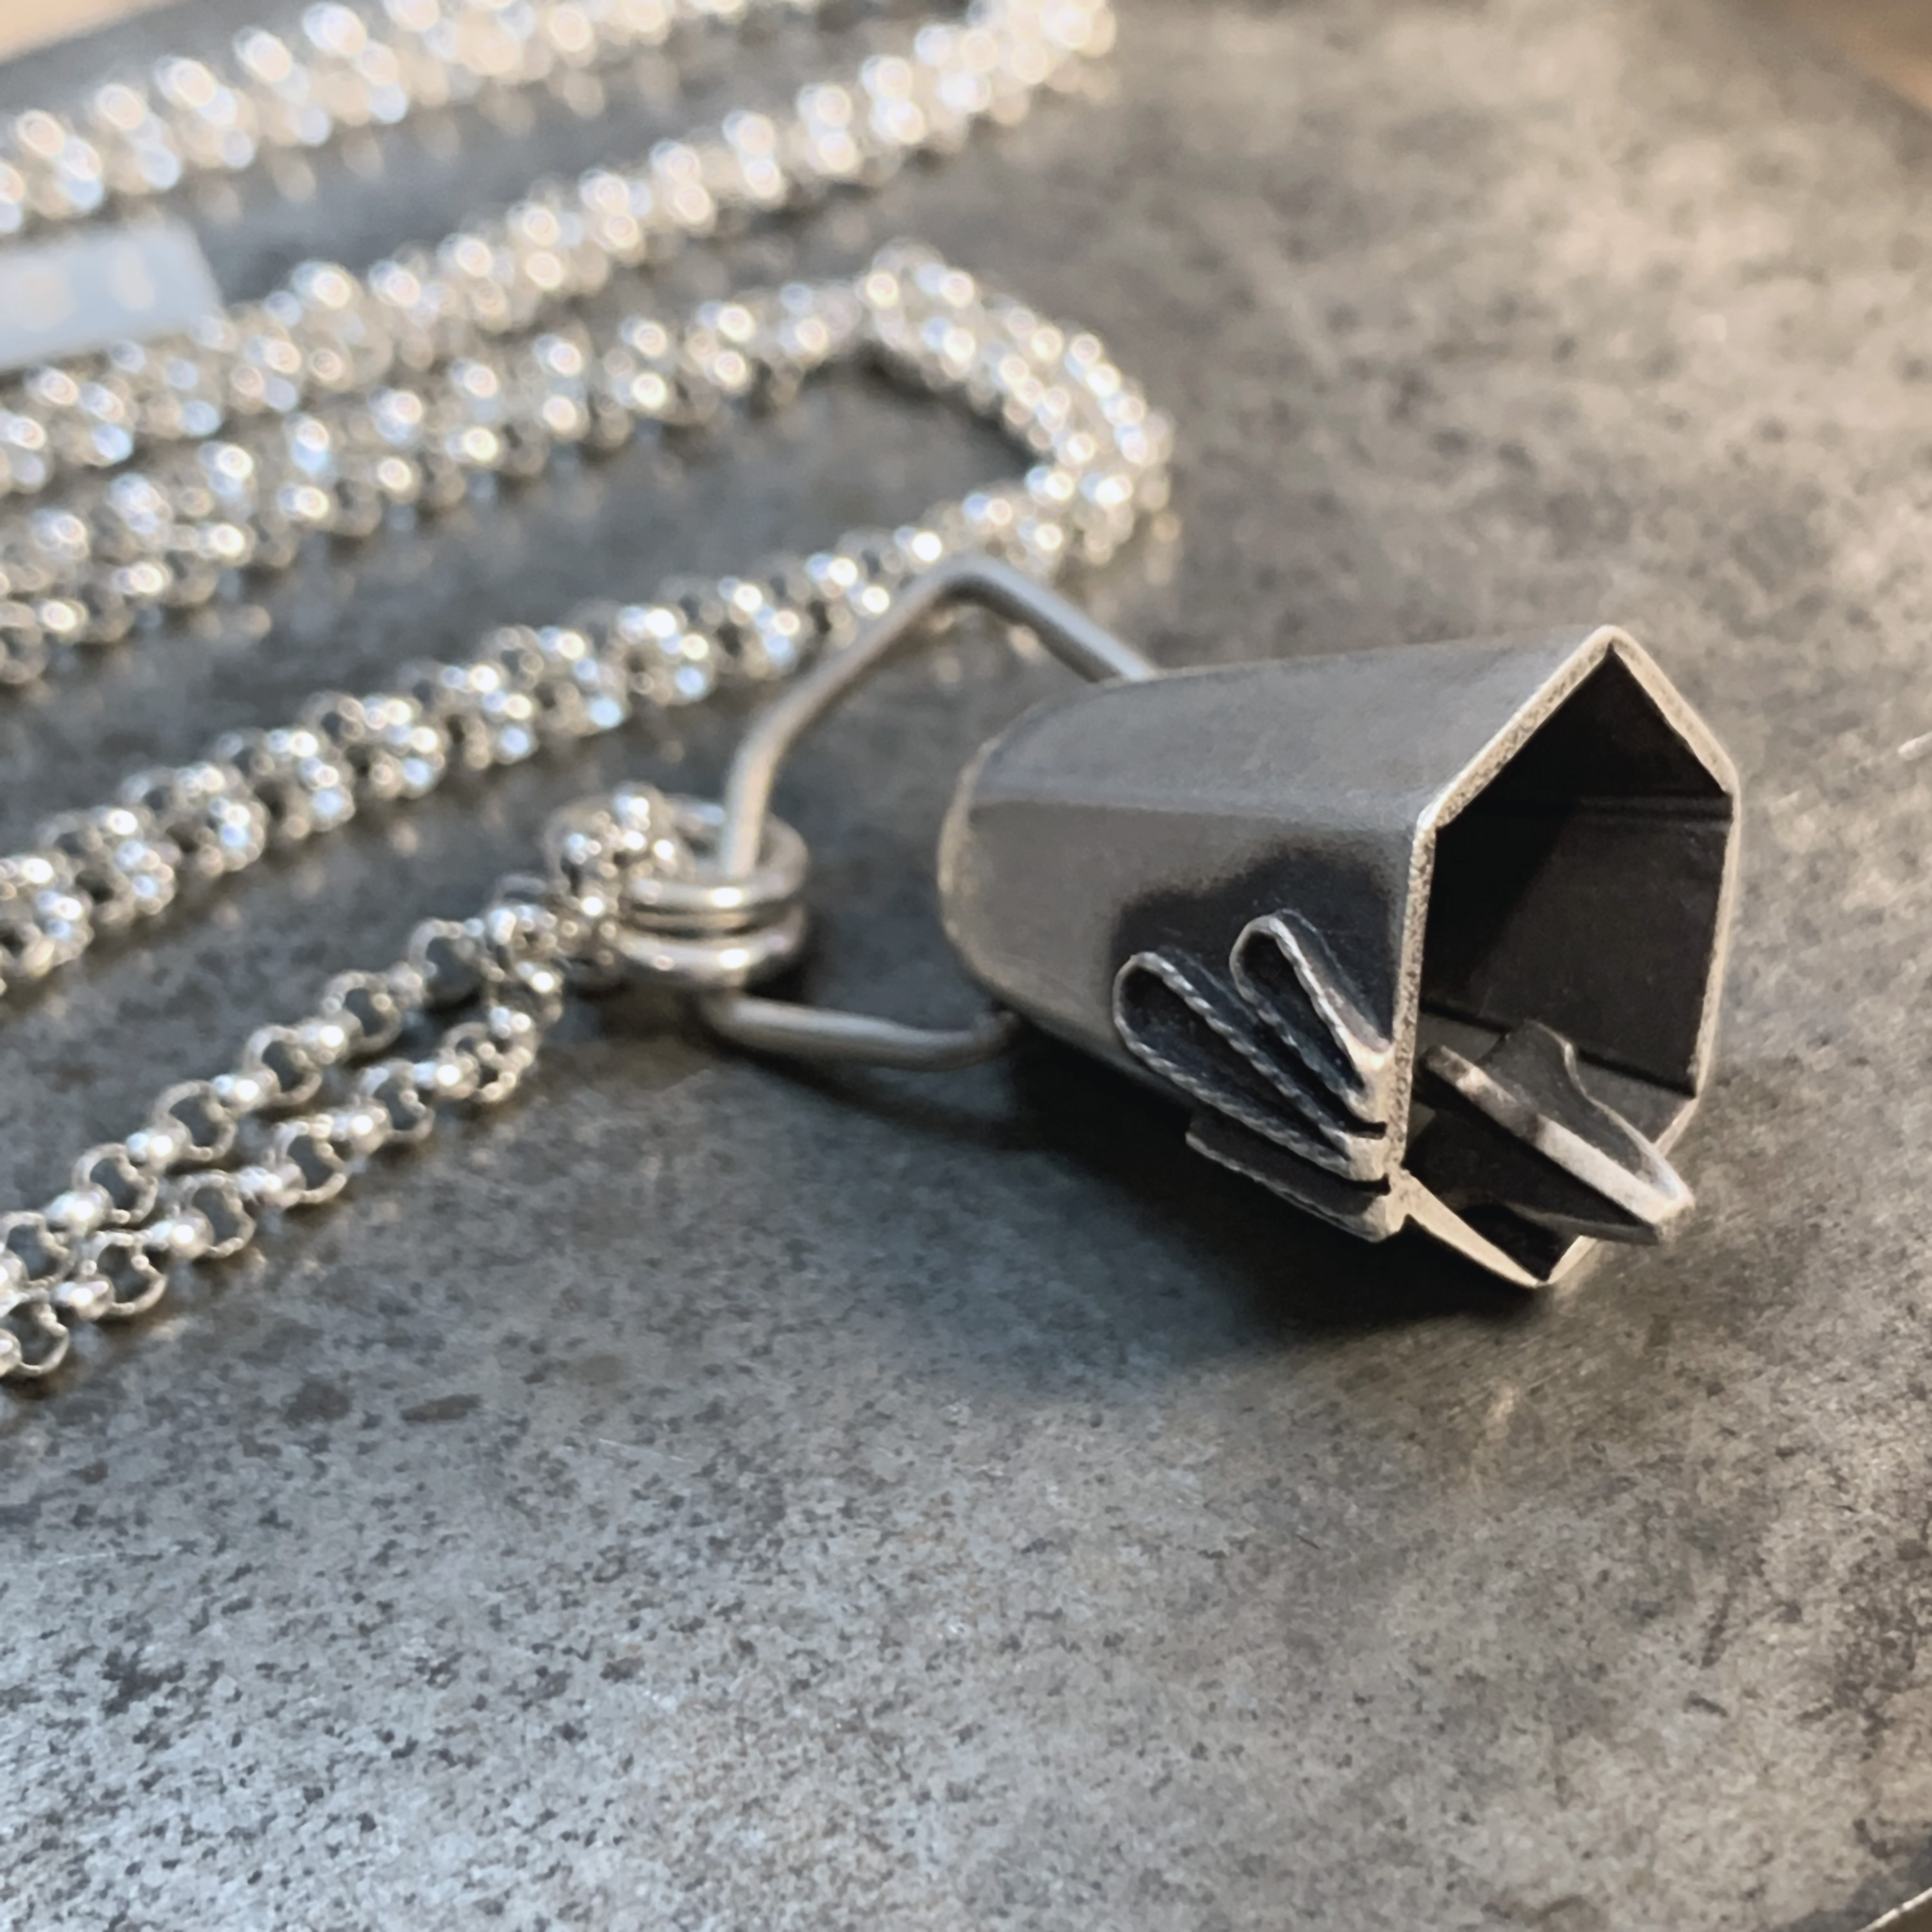 Kinetic silver bell necklace